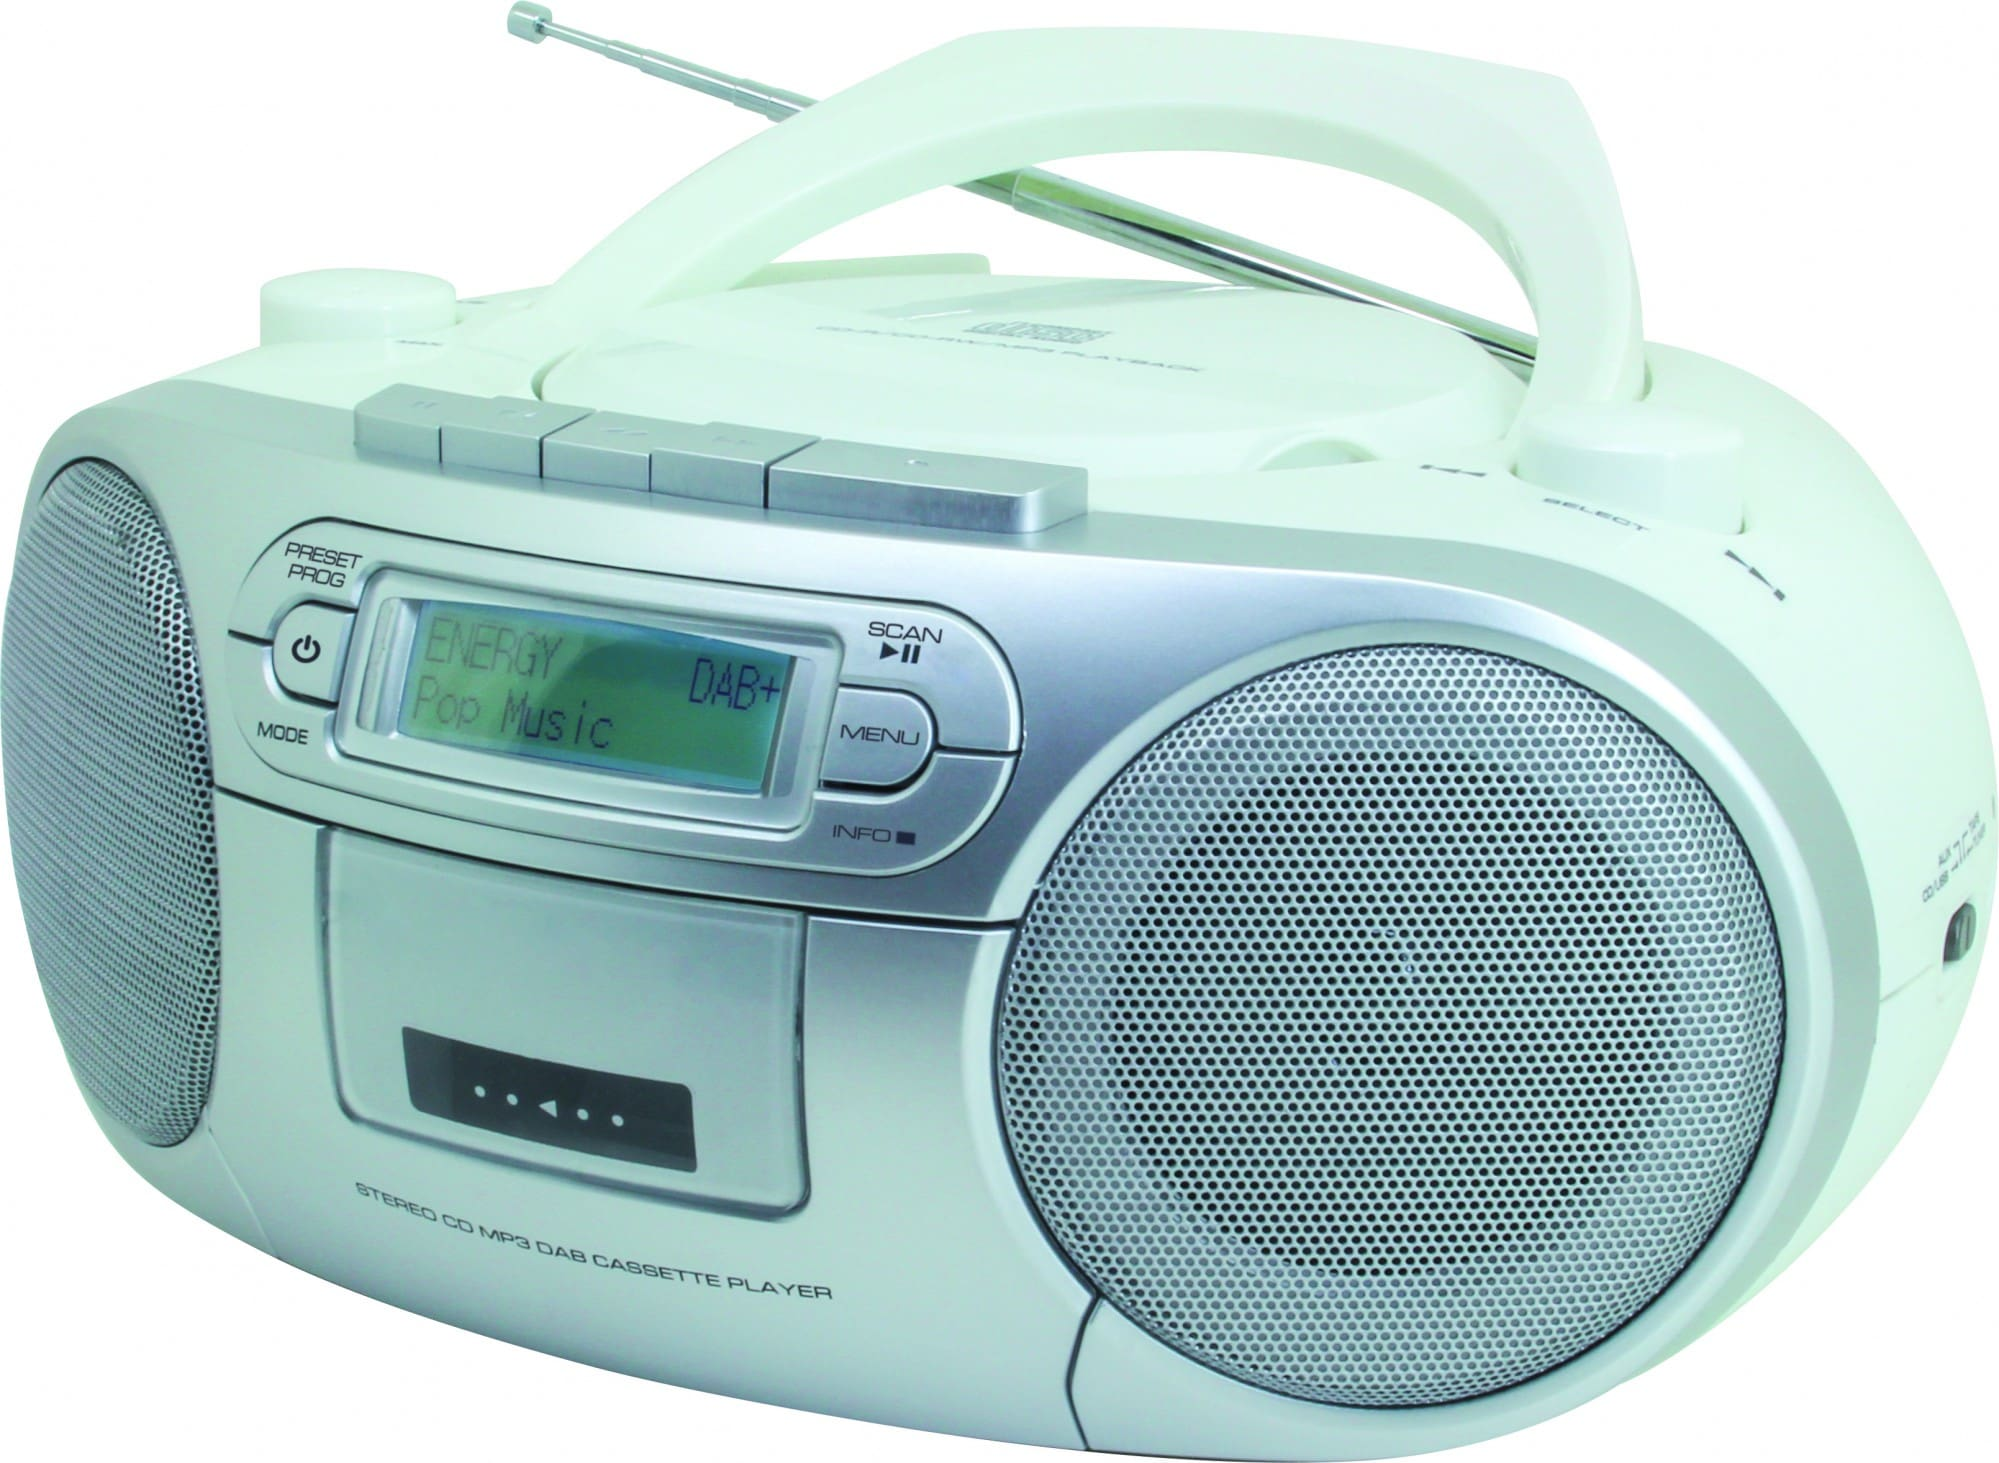 Soundmaster SCD7900WE CD Payer DAB+,FM Radio für 80,96 Euro